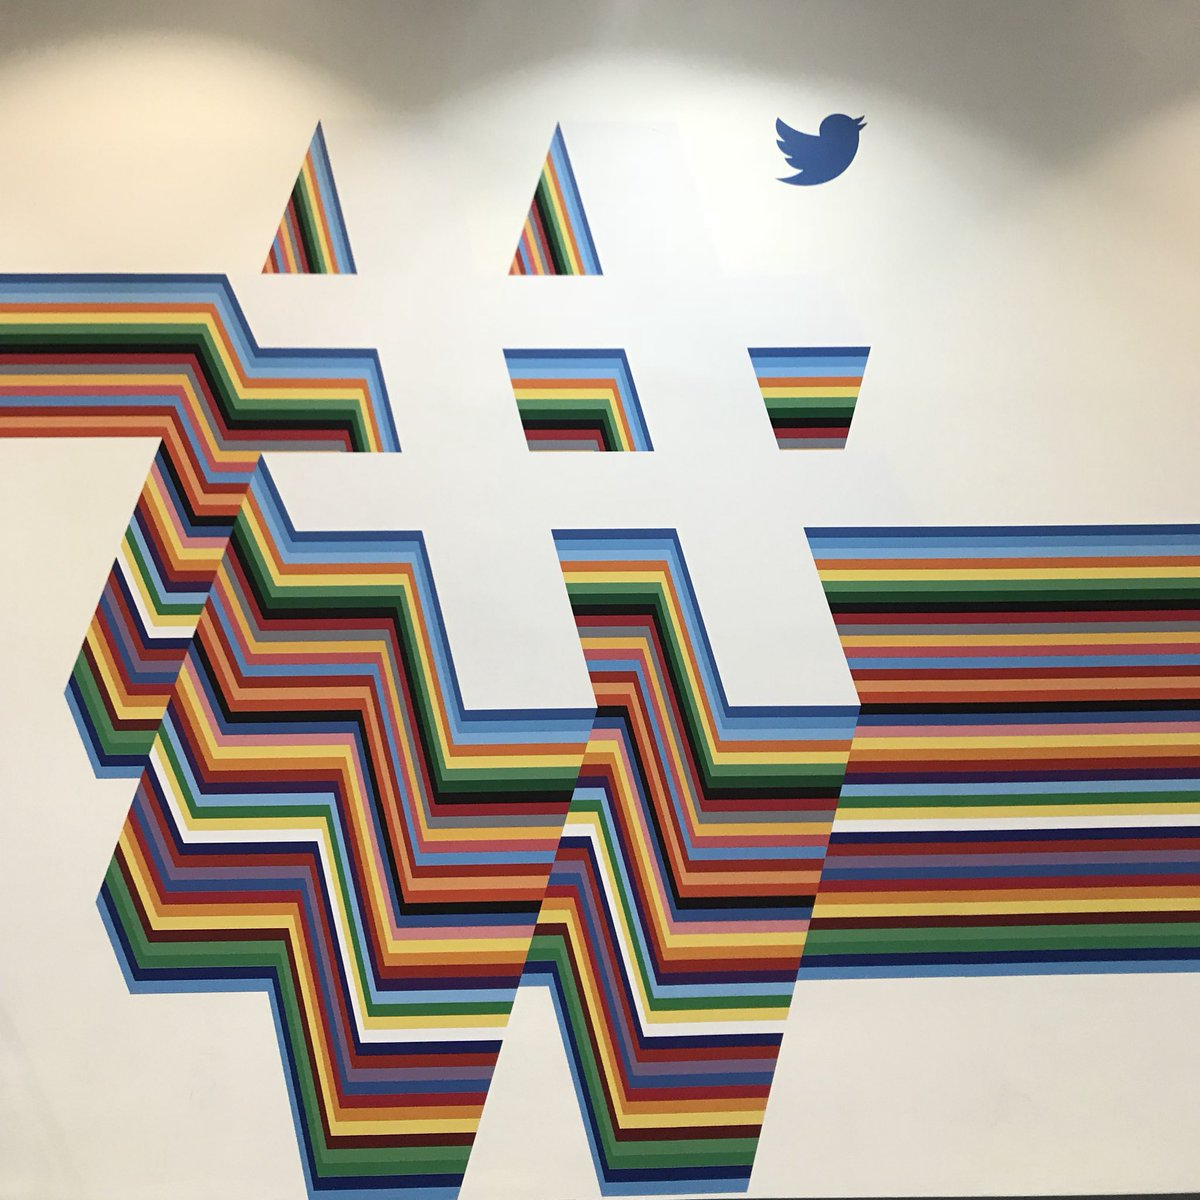 It's finally here! Welcome to #OneTeam https://t.co/iNBIwouavb